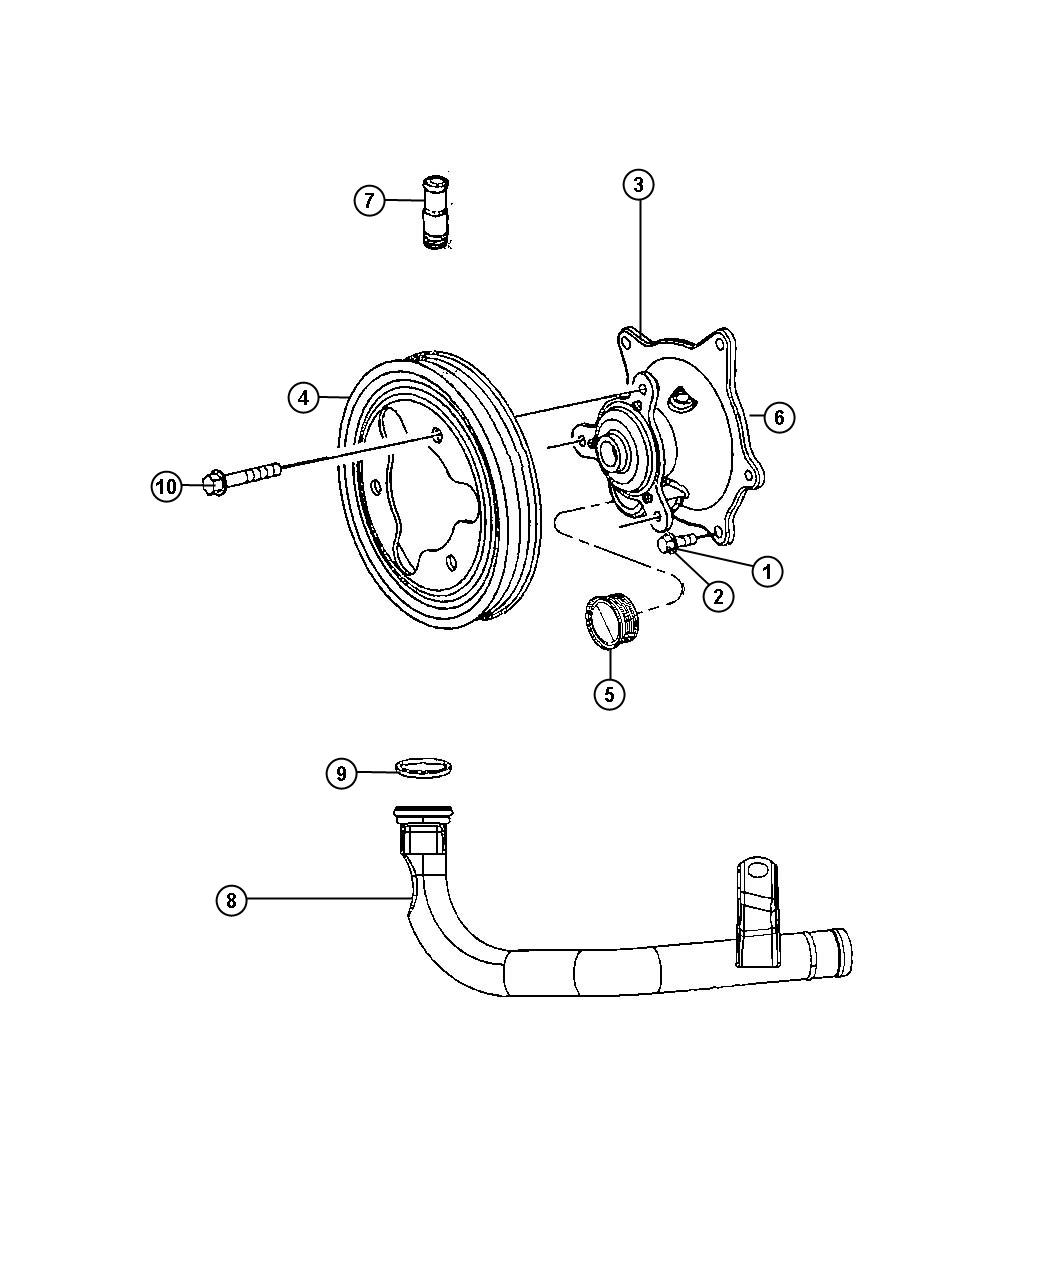 1996 chevy monte carlo water pump